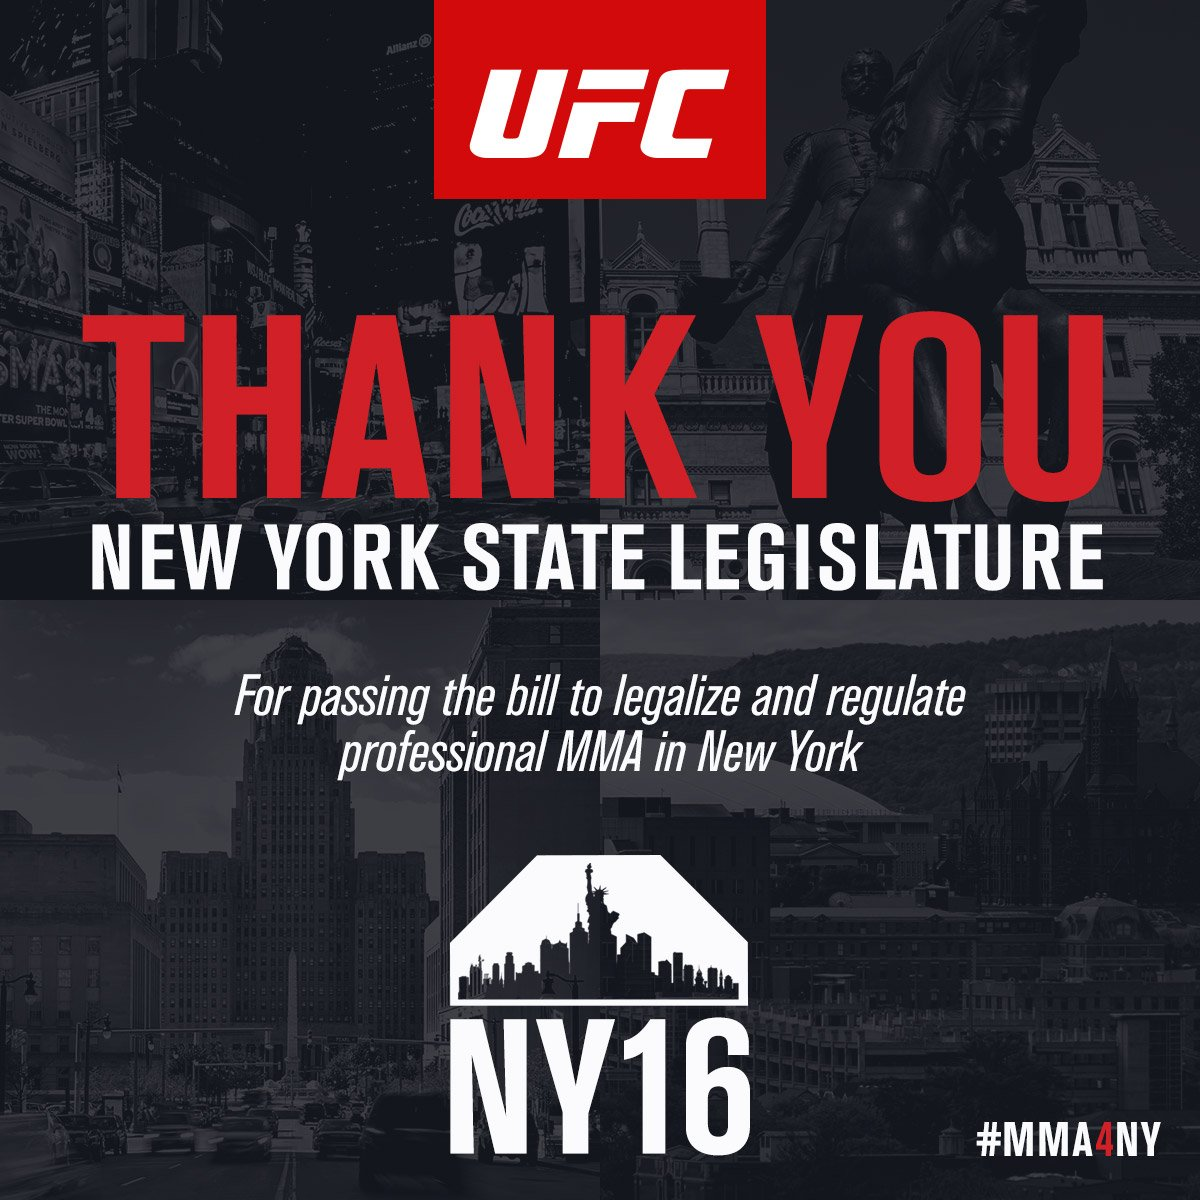 Great #REsult #mma4ny #ufc https://t.co/vNEv5mbWSf